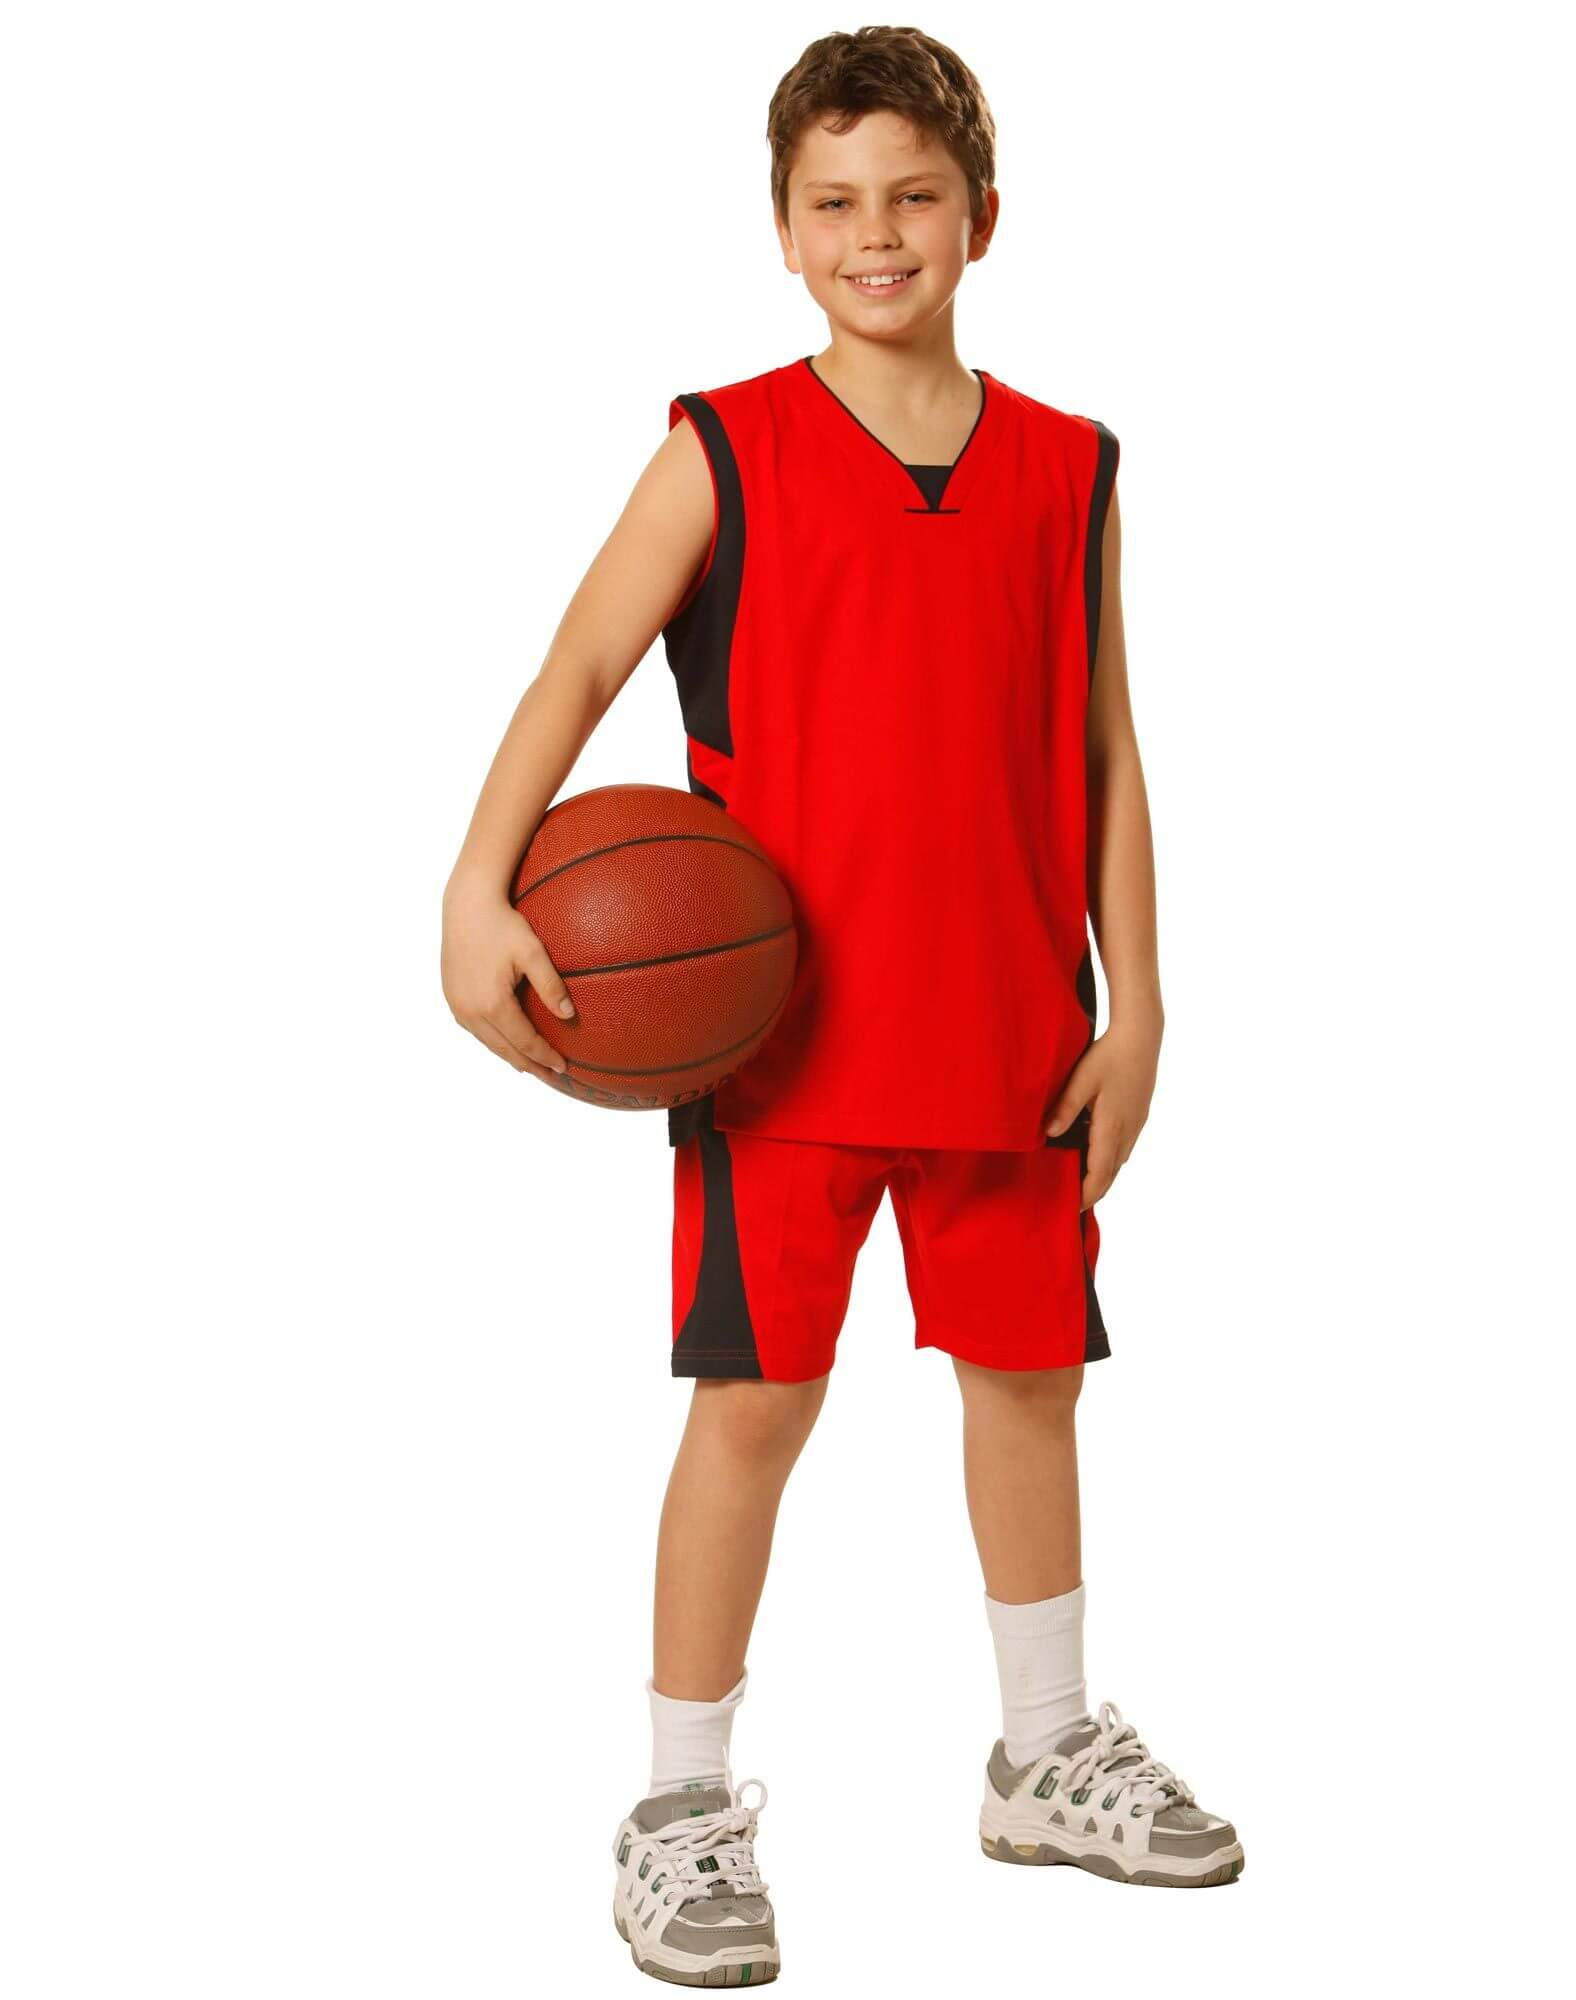 Kids Basketball Jerseys Manufacturers in United-states-of-america